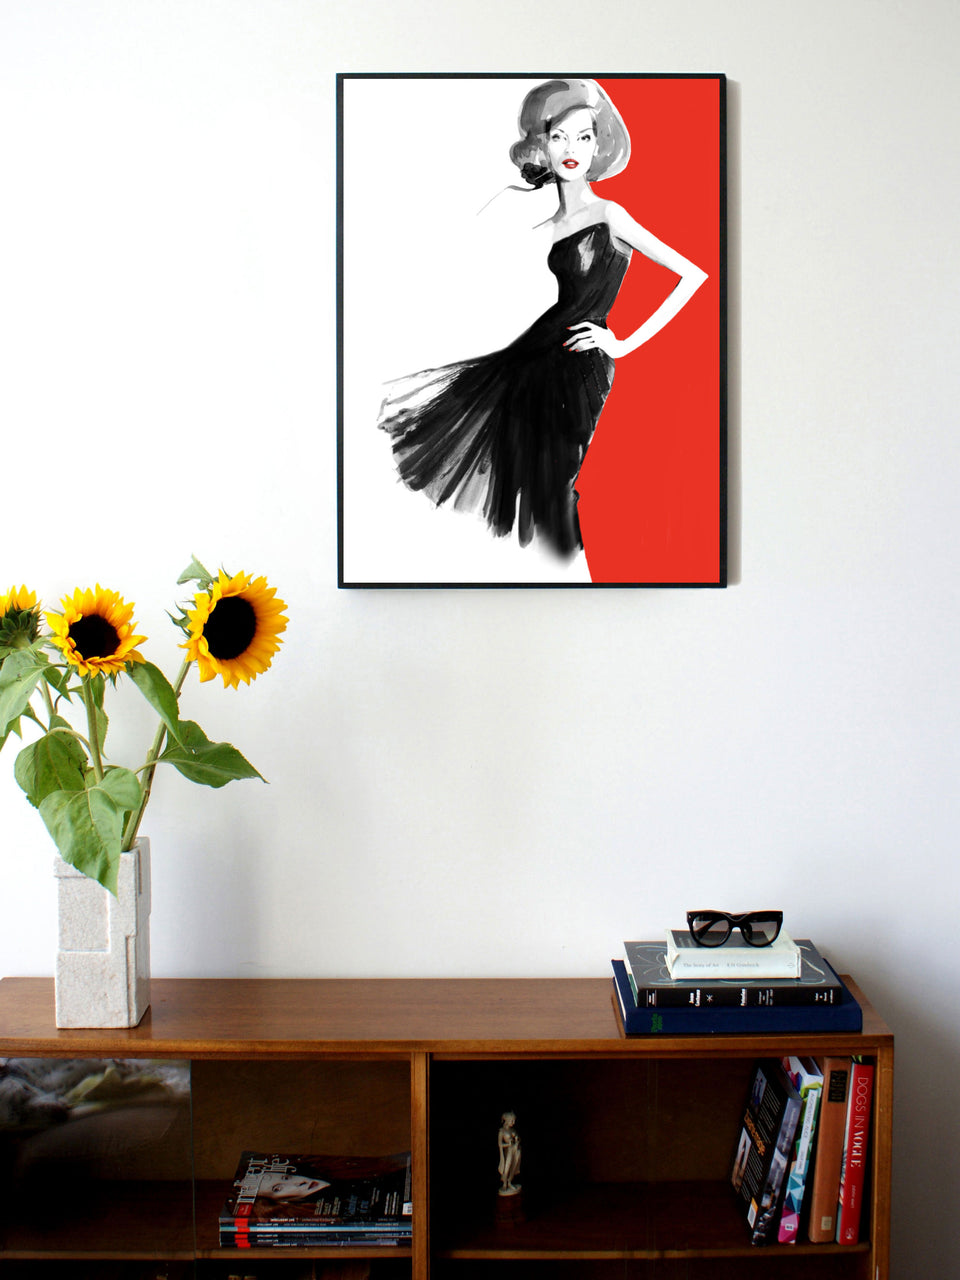 Fashion illustration print of Gucci Red by Sjoukje Bierma - woman in black dress - 60 x 80 cm framed